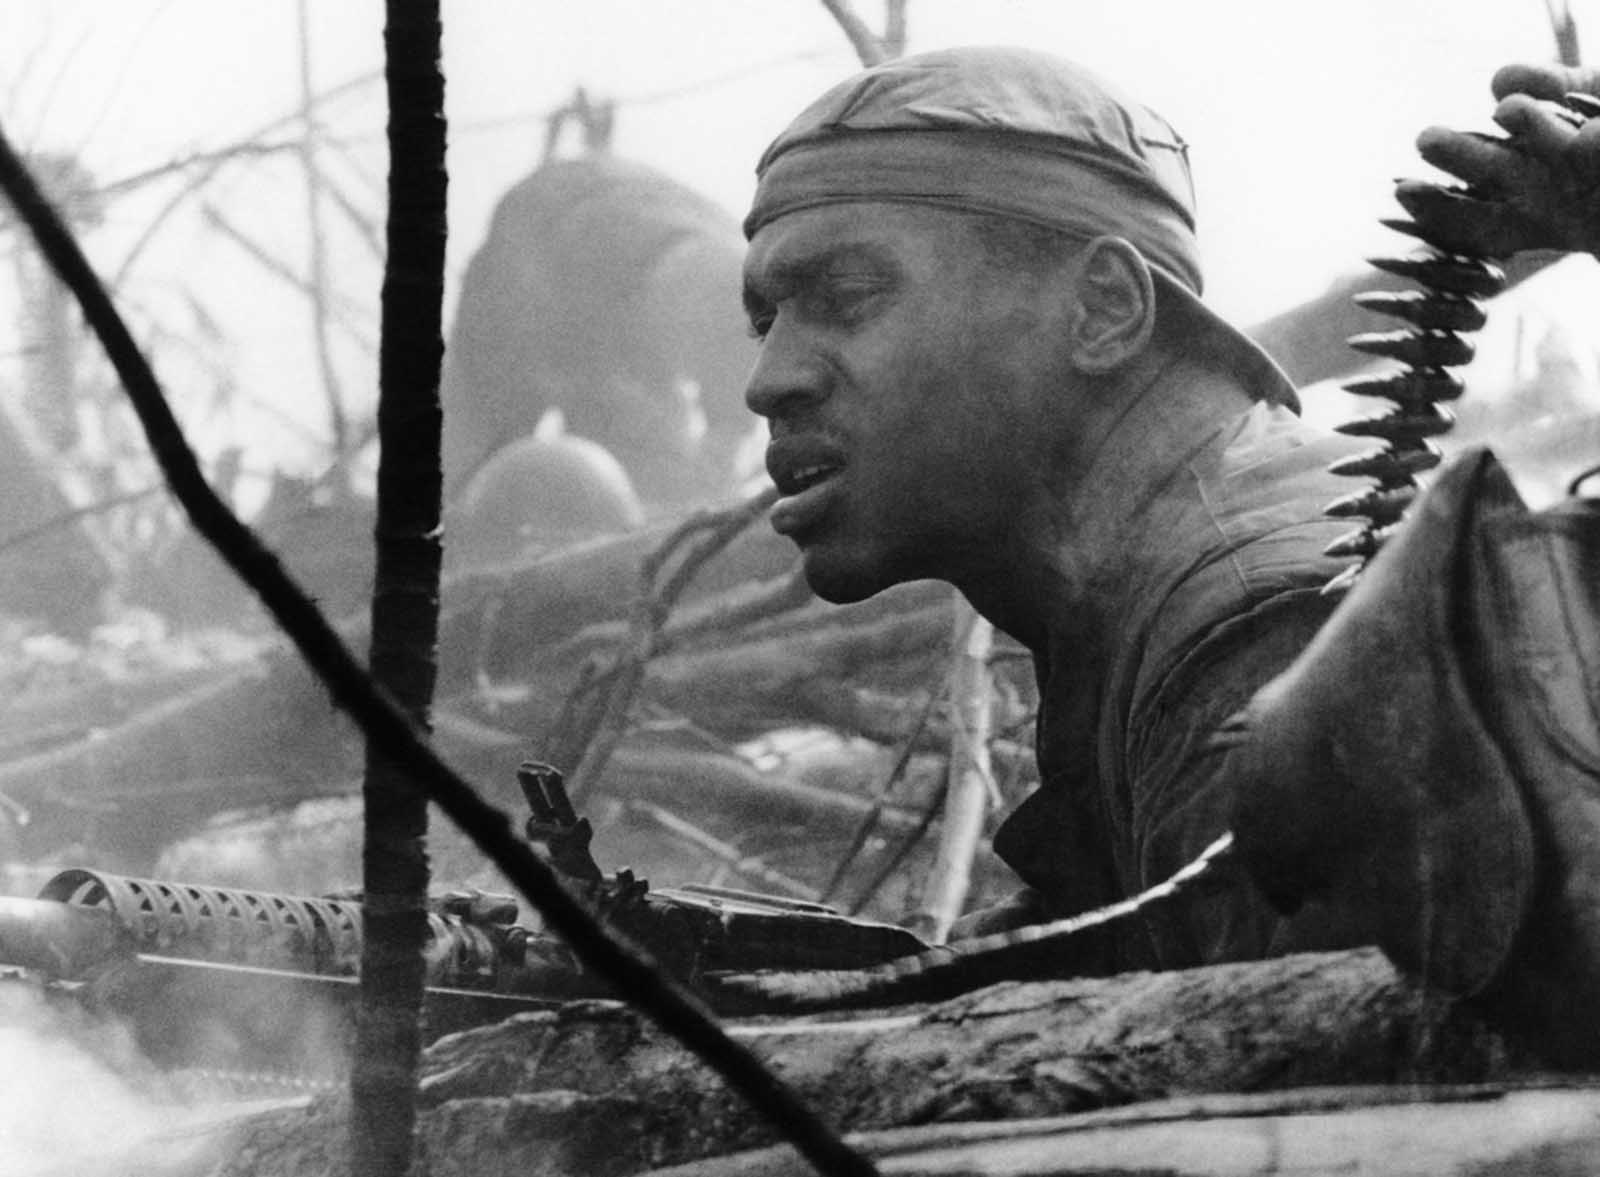 A grim-faced U.S. Marine fires his M60 machine gun, concealed behind logs and resting in a shallow hole, during the battle against North Vietnamese regulars for Hill 484, just south of the demilitarized zone, on October 10, 1966. After three weeks of bitter fighting, the 3rd battalion of the 4th Marines took the hill the week of October 2.